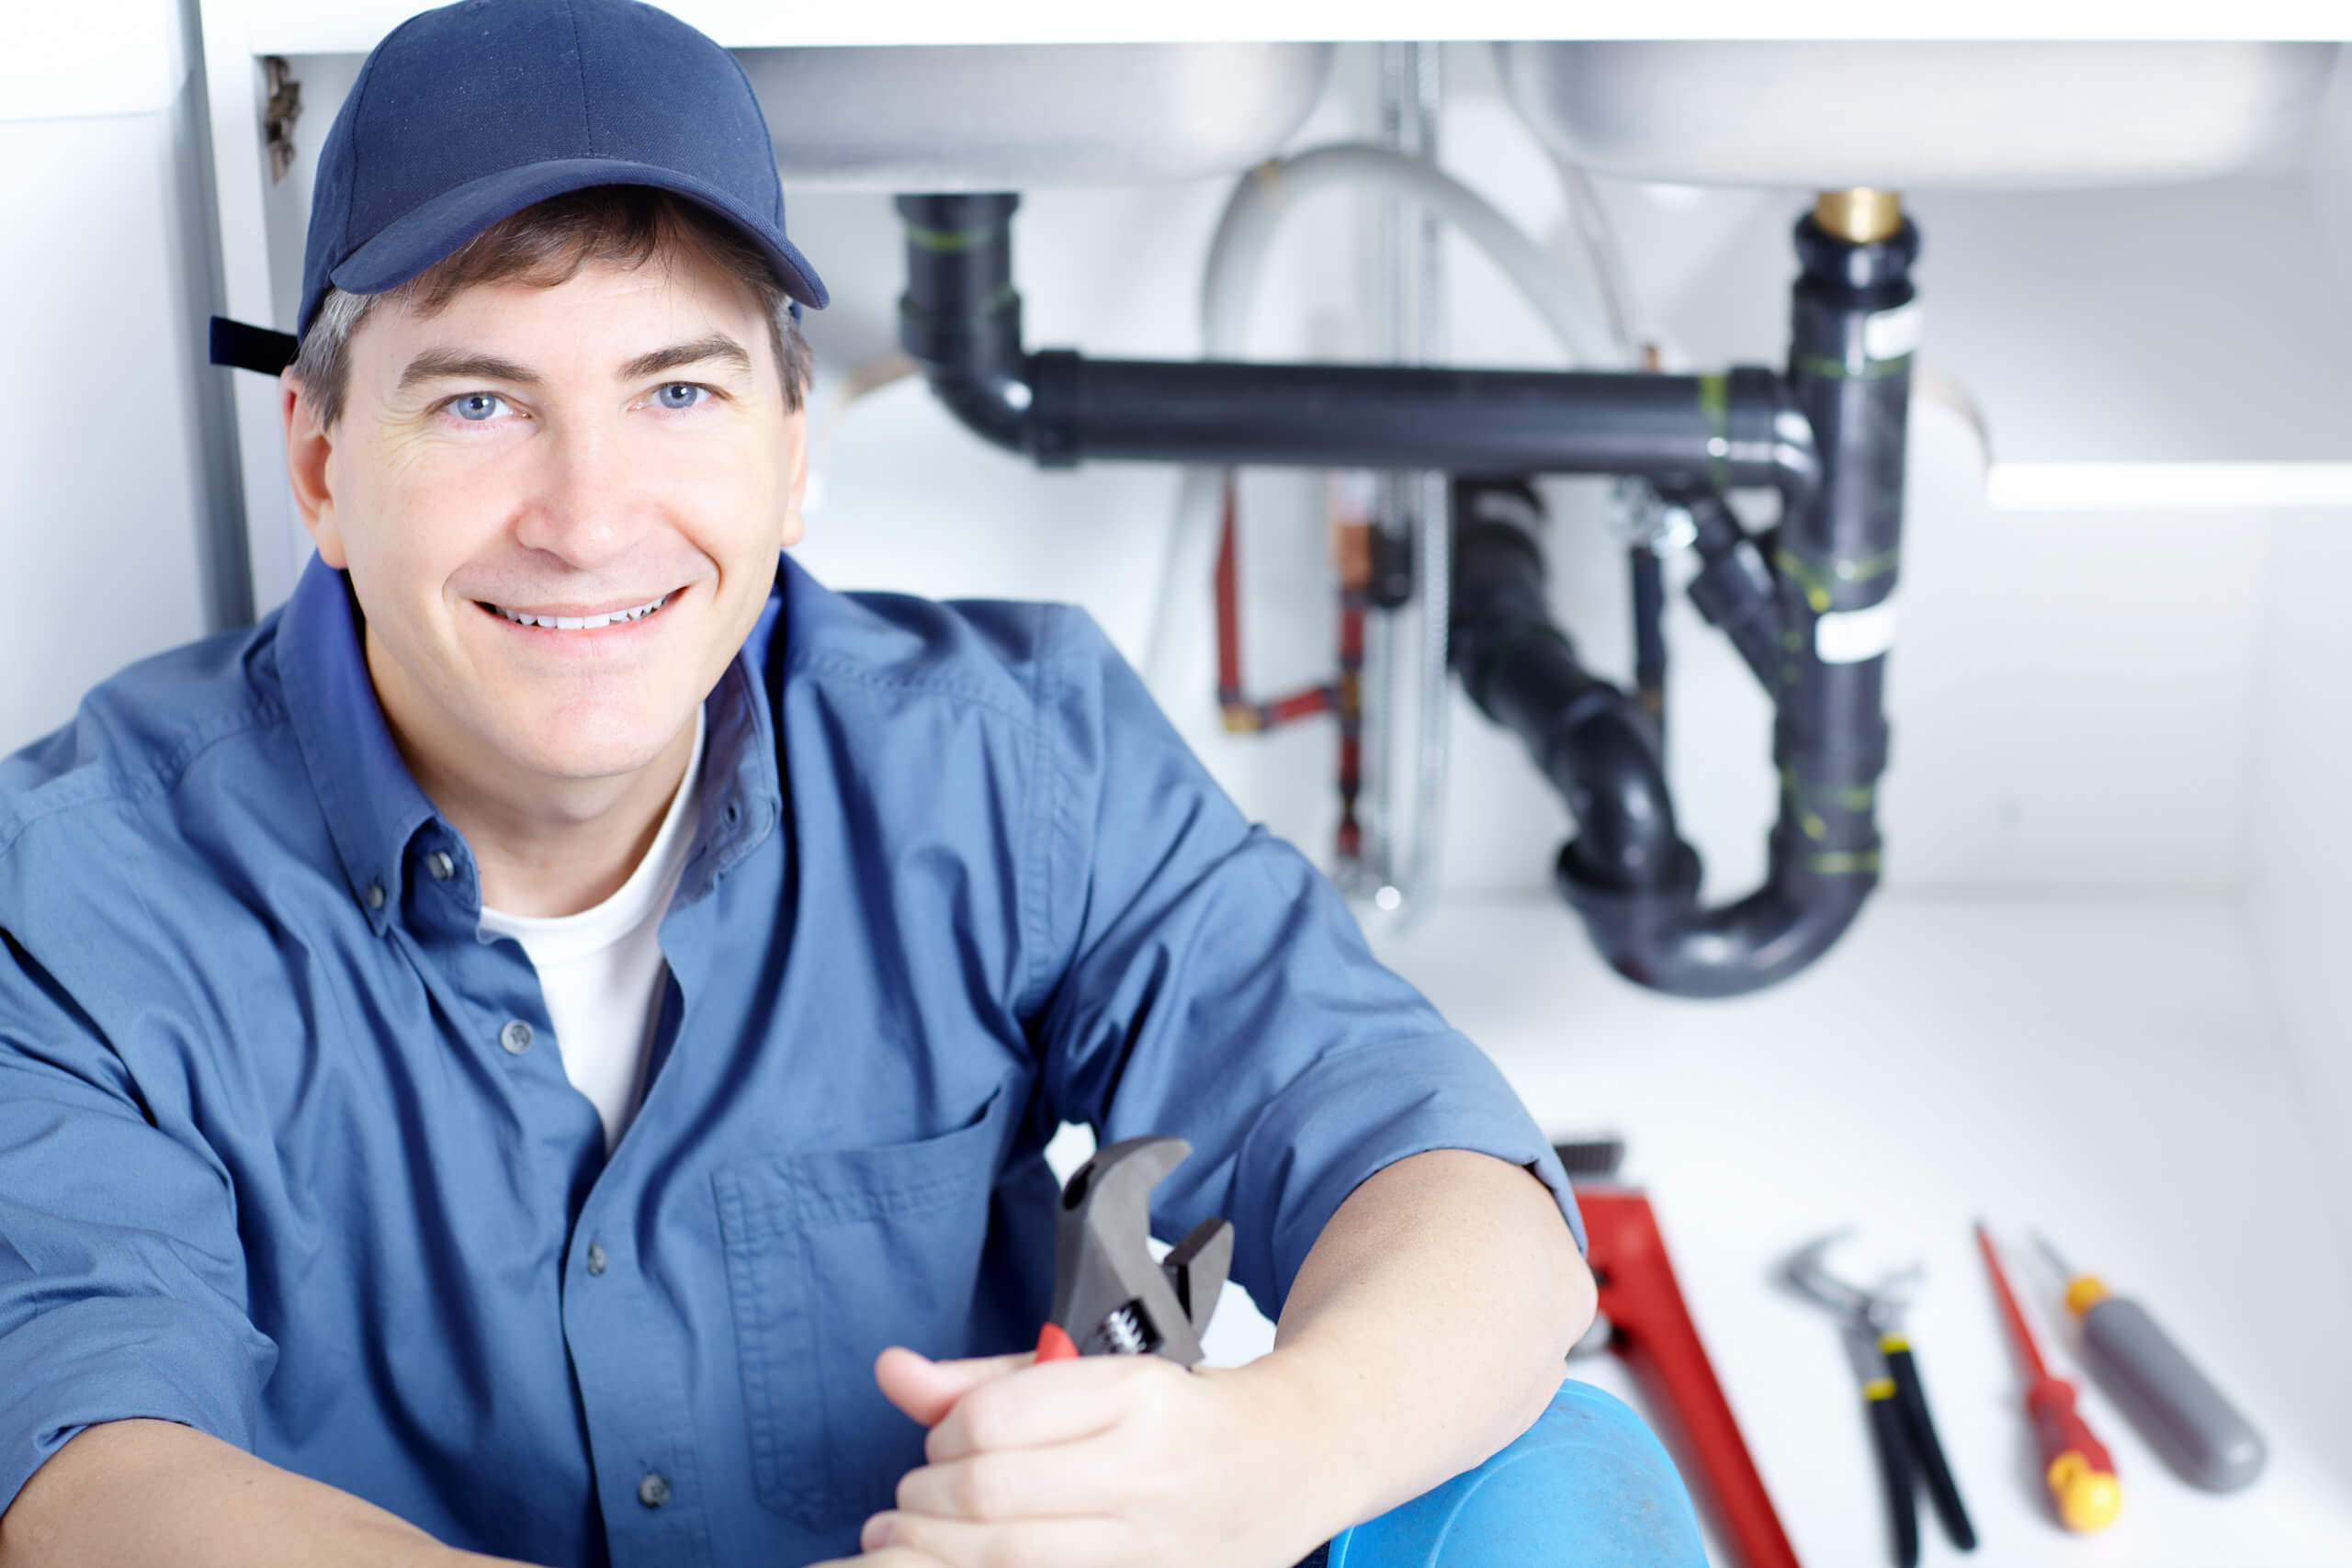 Sacramento water jetting service by America's Plumbing Co.